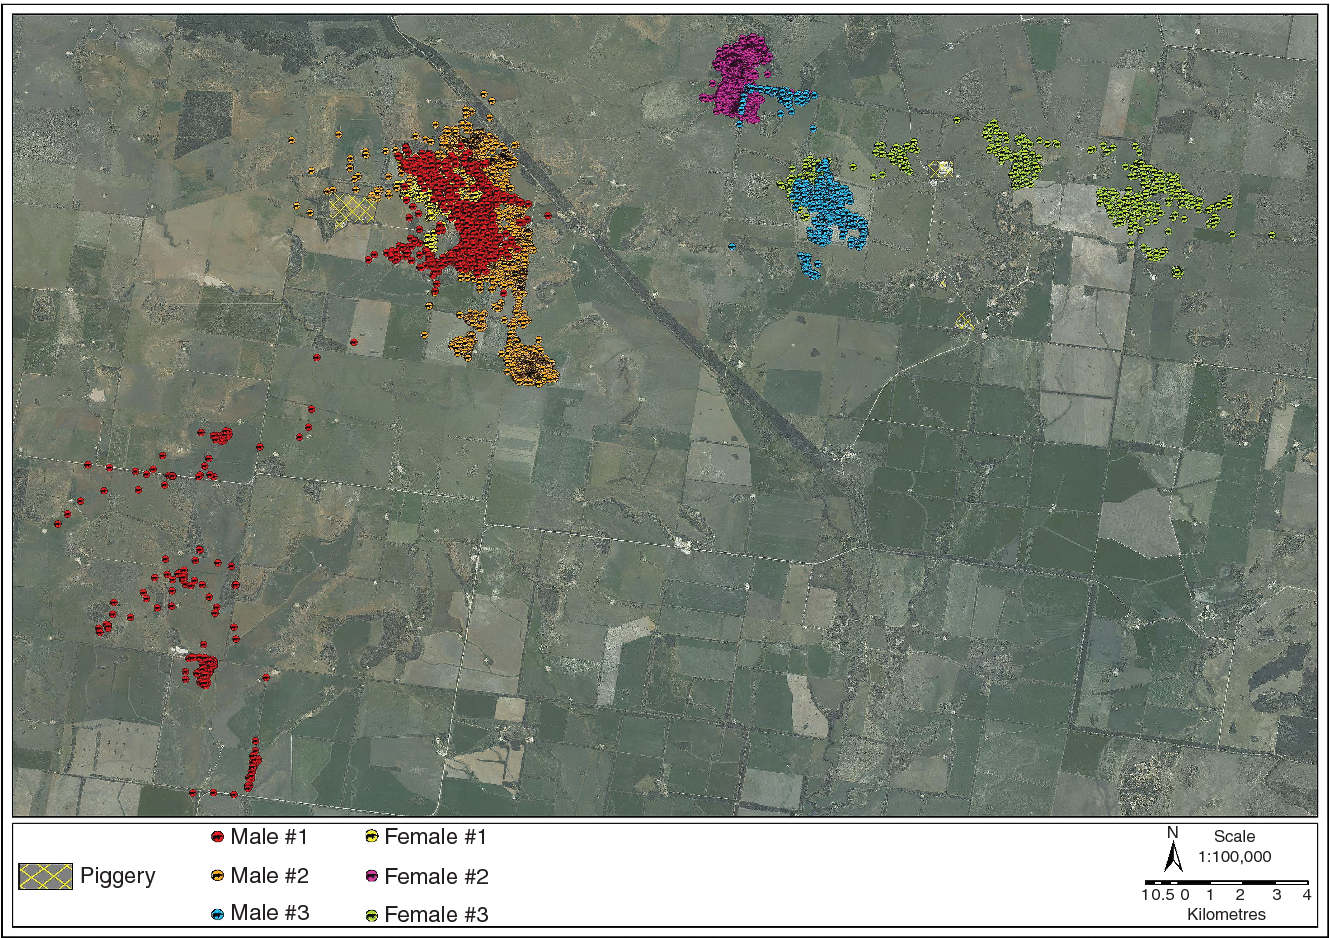 FIG 1: Total movement of six feral pigs in the vicinity of two commercial piggeries between June 2010 and December 2010 in Southern Queensland, Australia